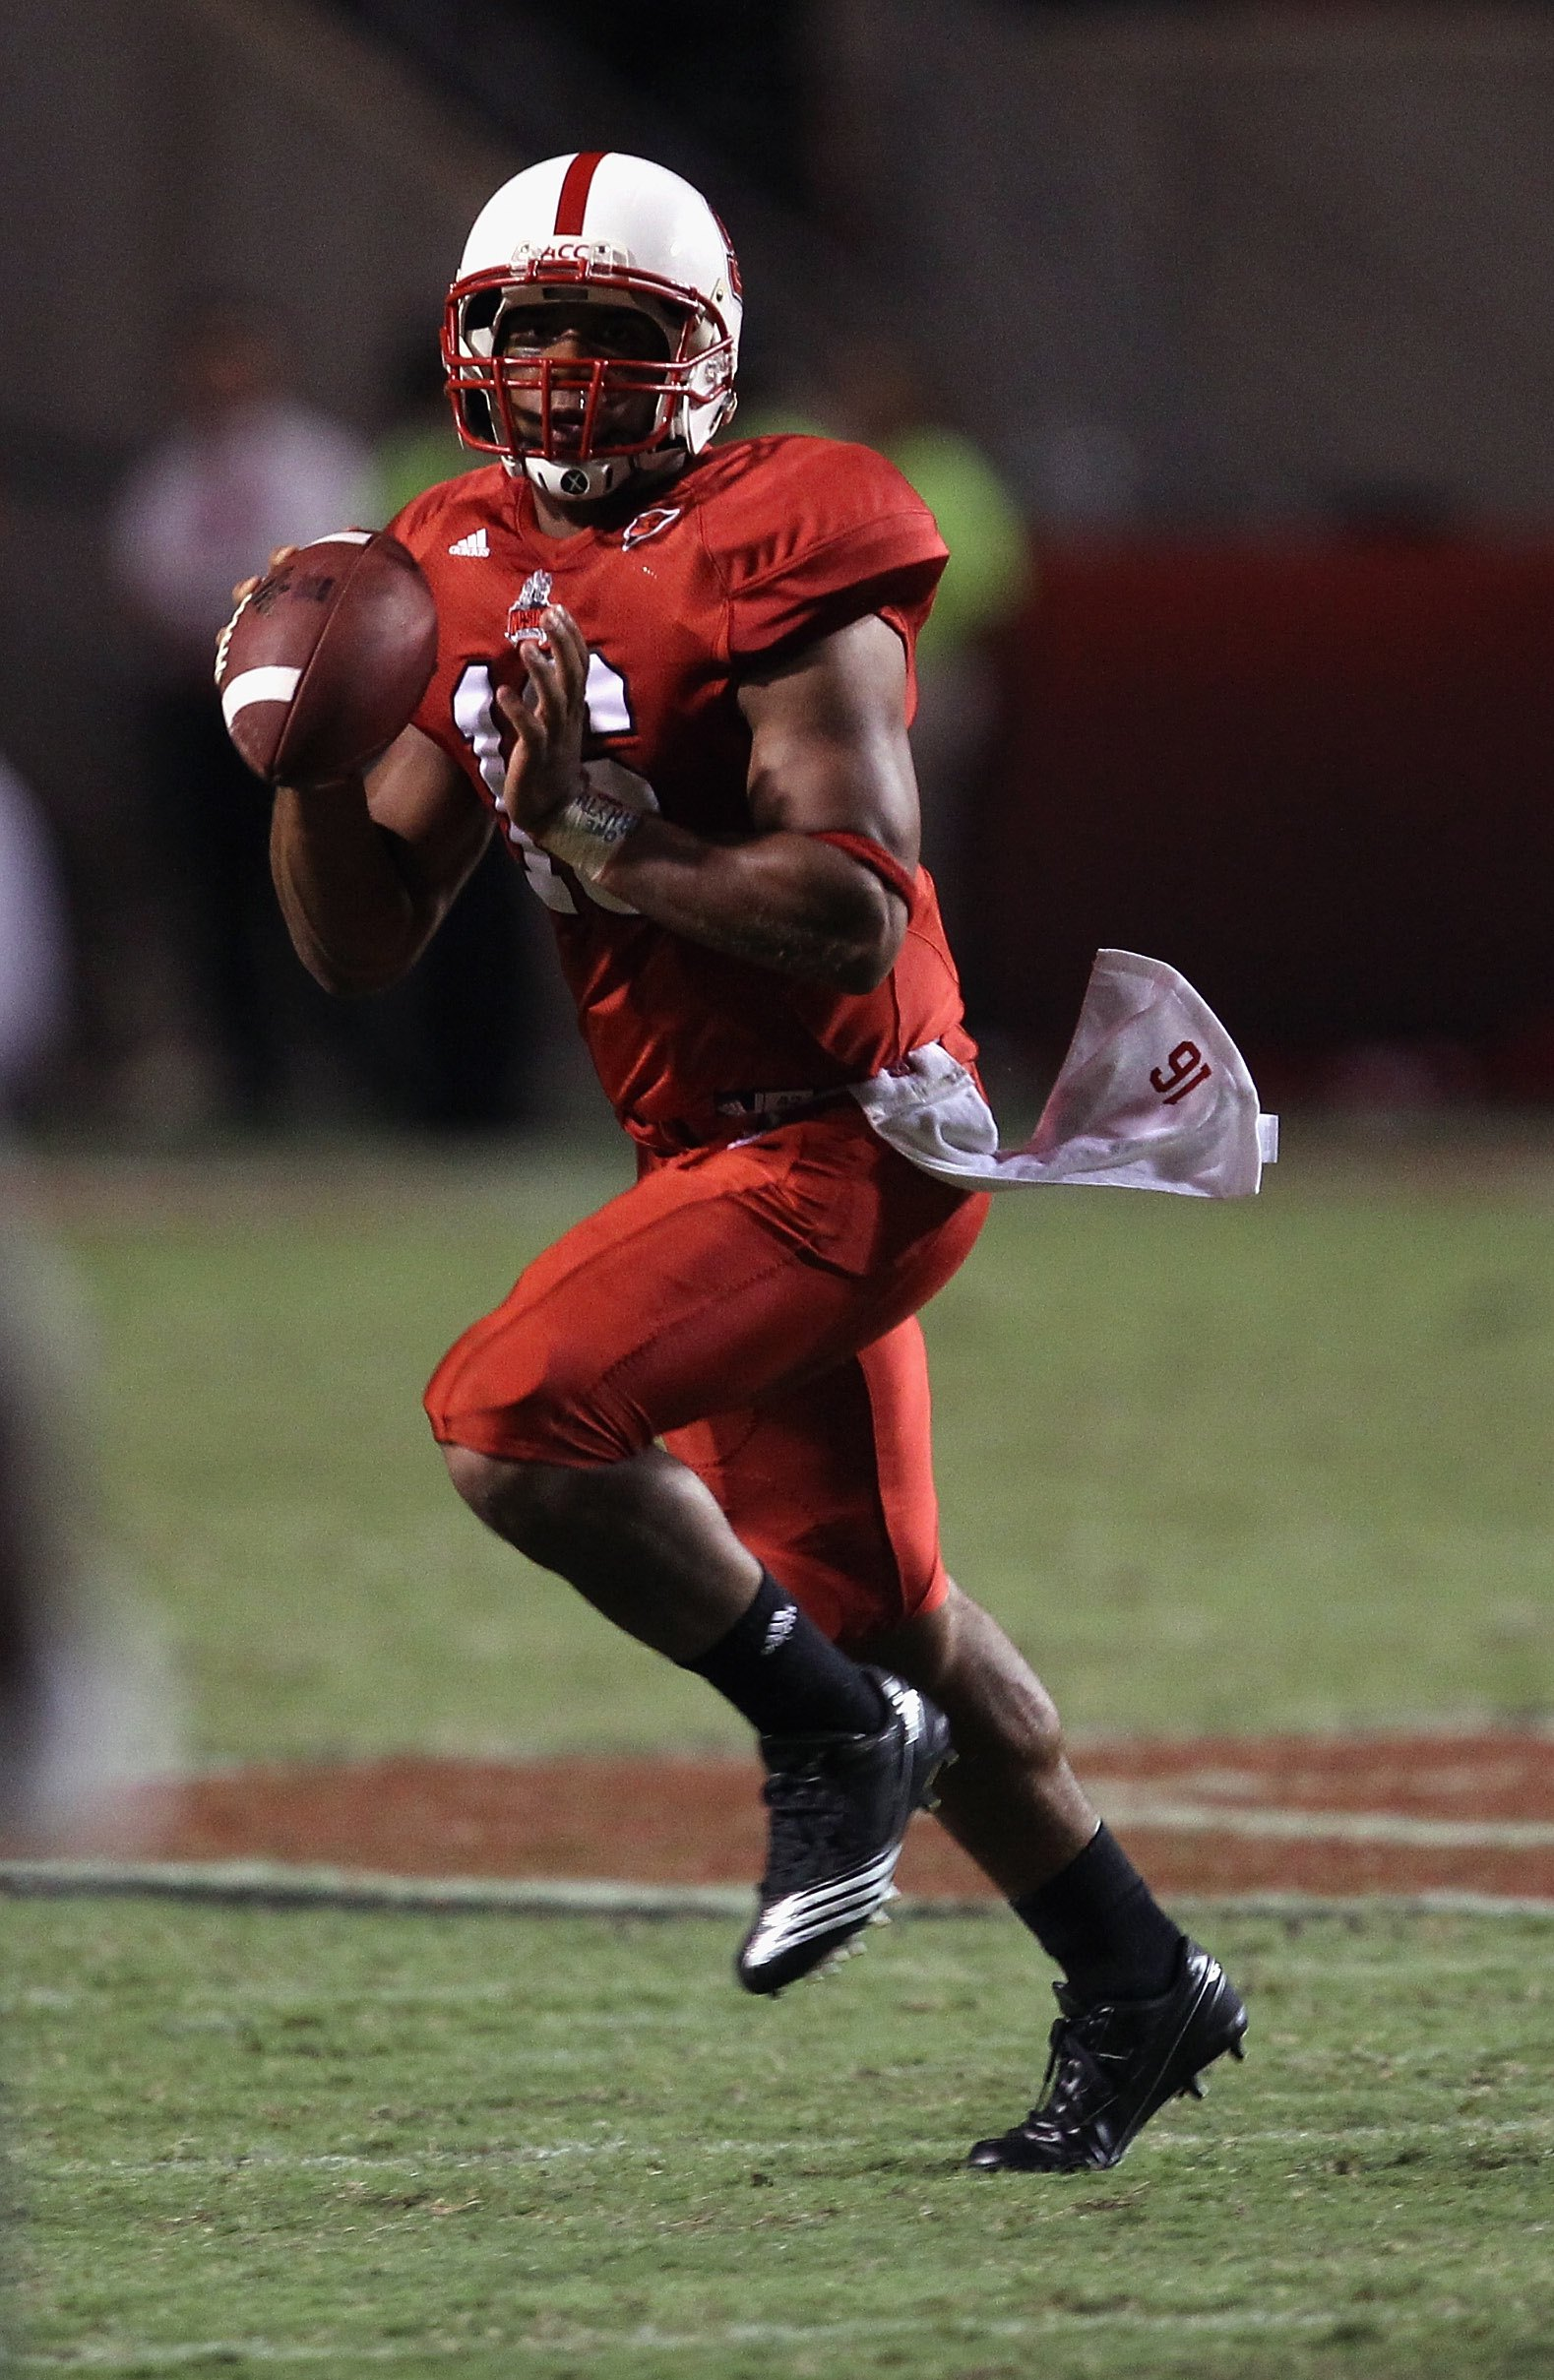 Russell Wilson and #23 NC St faces VT this weekend